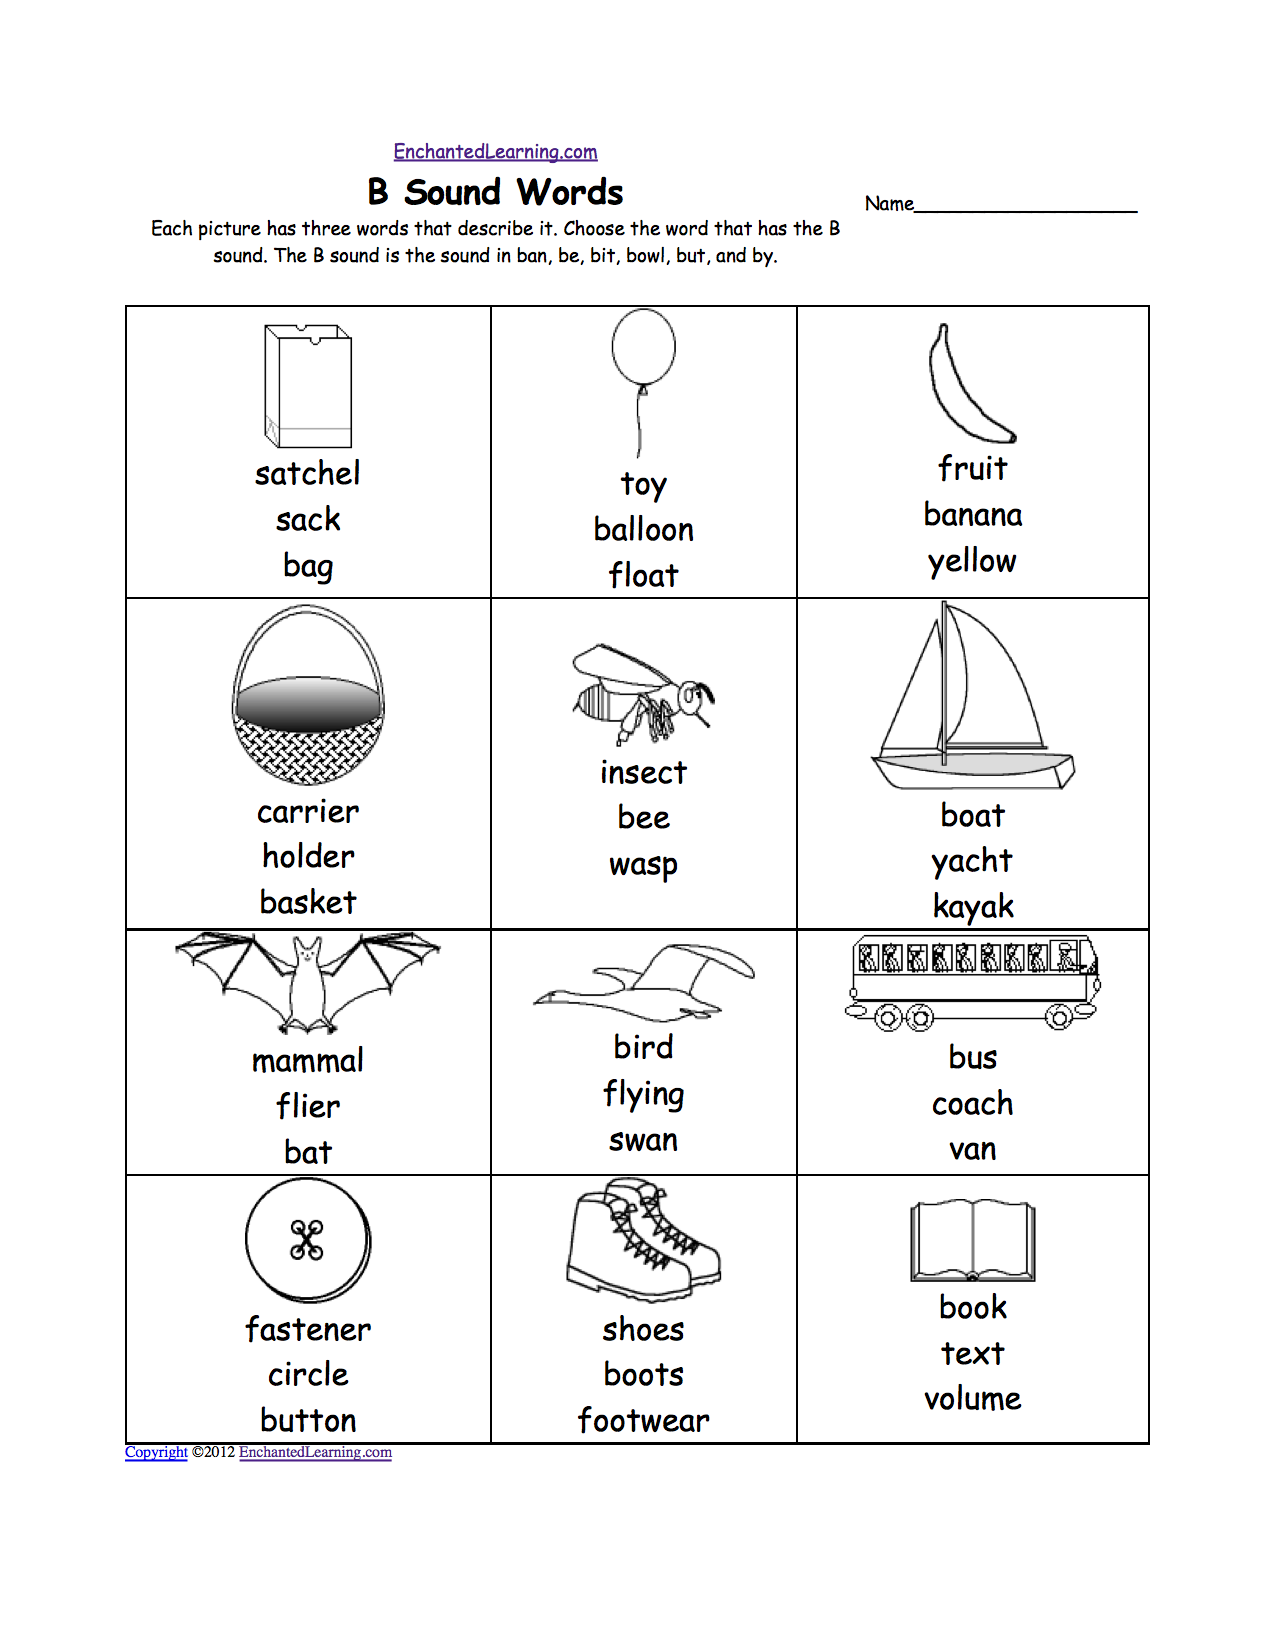 Weirdmailus  Winsome Phonics Worksheets Multiple Choice Worksheets To Print  With Fetching Quotbquot Sound Phonics Worksheet Multiple Choice Each Picture Has Three Words That Describe It Choose The Word That Has A Quotbquot Sound The Quotbquot Sound Is The Sound  With Easy On The Eye Hr Diagram Worksheet Answers Also Sensory Details Worksheet In Addition Free Body Diagram Worksheet With Answers And Multiplying Fractions With Whole Numbers Worksheets As Well As Derivative Practice Worksheet Additionally Ged Math Practice Worksheets From Enchantedlearningcom With Weirdmailus  Fetching Phonics Worksheets Multiple Choice Worksheets To Print  With Easy On The Eye Quotbquot Sound Phonics Worksheet Multiple Choice Each Picture Has Three Words That Describe It Choose The Word That Has A Quotbquot Sound The Quotbquot Sound Is The Sound  And Winsome Hr Diagram Worksheet Answers Also Sensory Details Worksheet In Addition Free Body Diagram Worksheet With Answers From Enchantedlearningcom